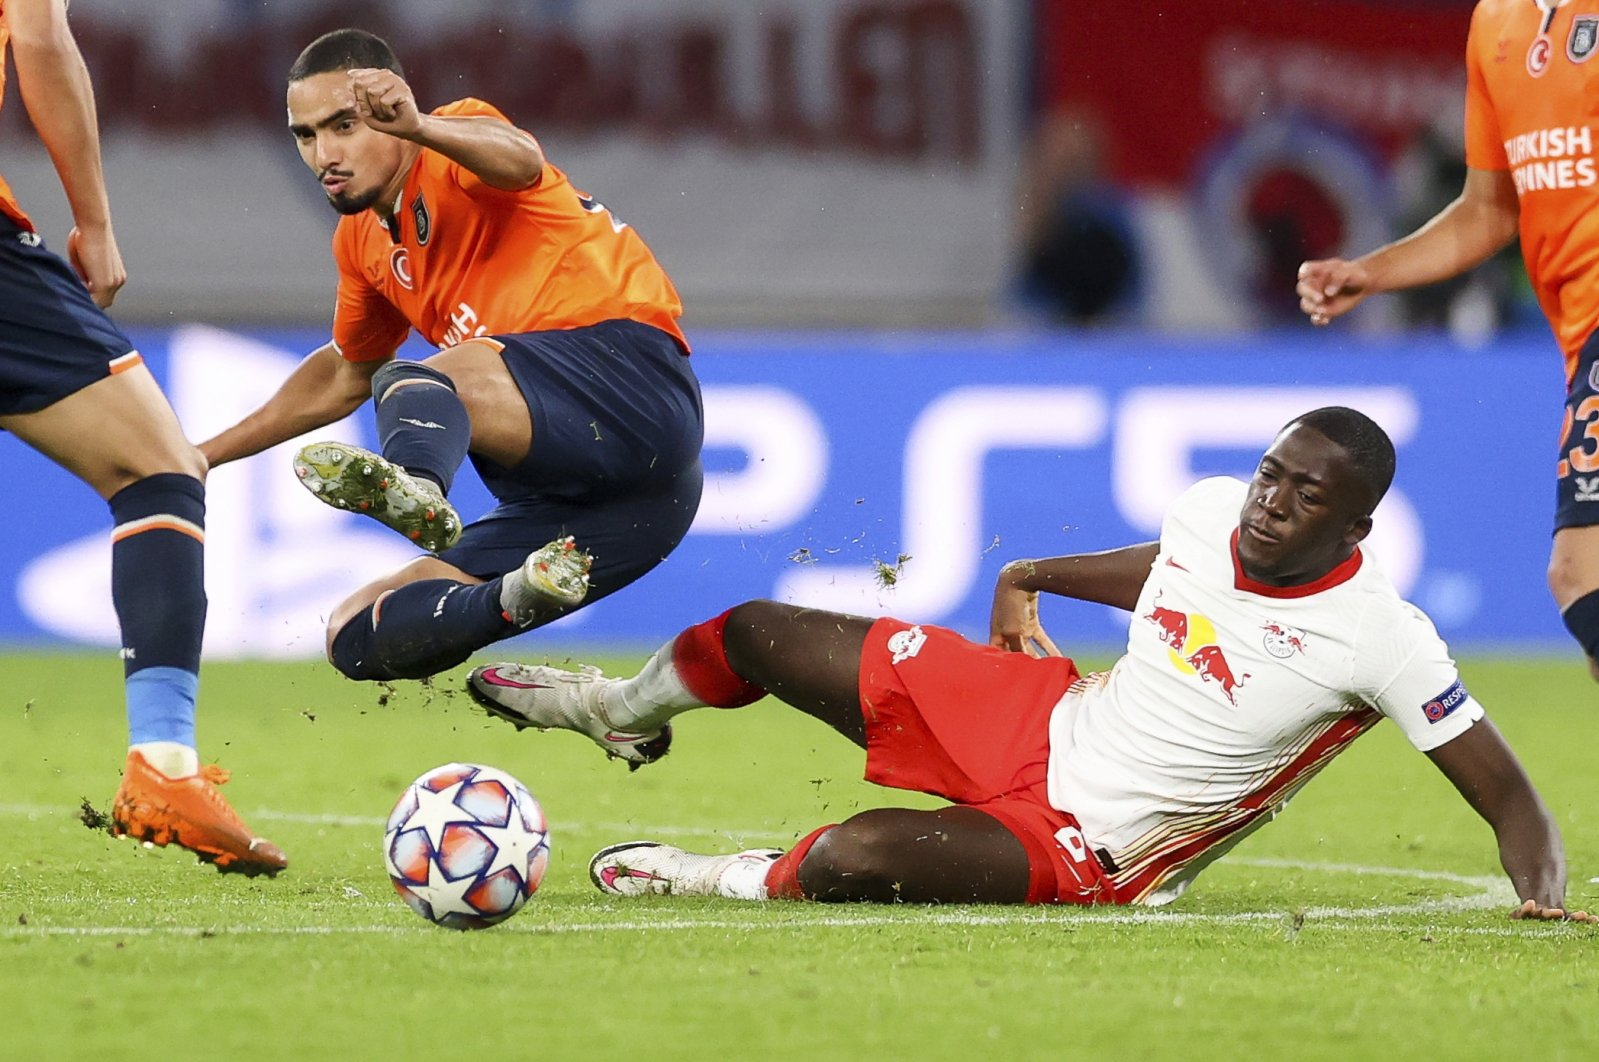 Leipzig's Ibrahima Konate, right, and Istanbul Başakşehir's Rafael compete for the ball during a Group H Champions League soccer match at the RB Arena in Leipzig, Germany, Tuesday Oct. 20, 2020. (Jan Woitas/dpa via AP)